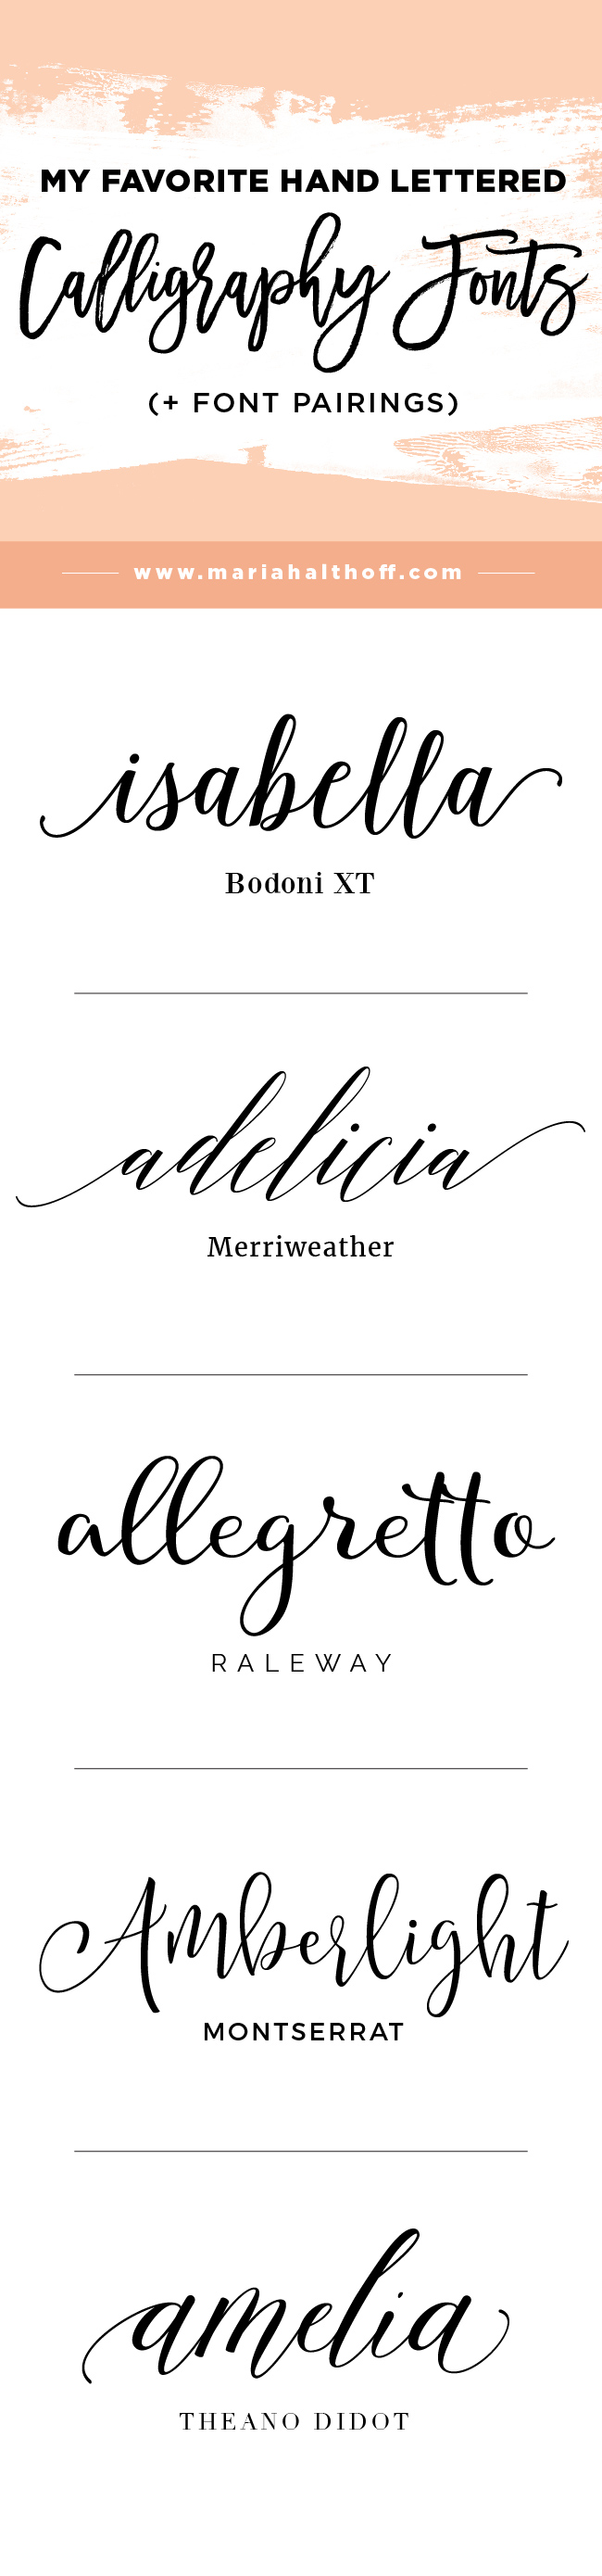 Wedding Calligraphy A Guide To Beautiful Hand Lettering My Top 5 Favorite Hand Lettered Calligraphy Fonts Font Pairings